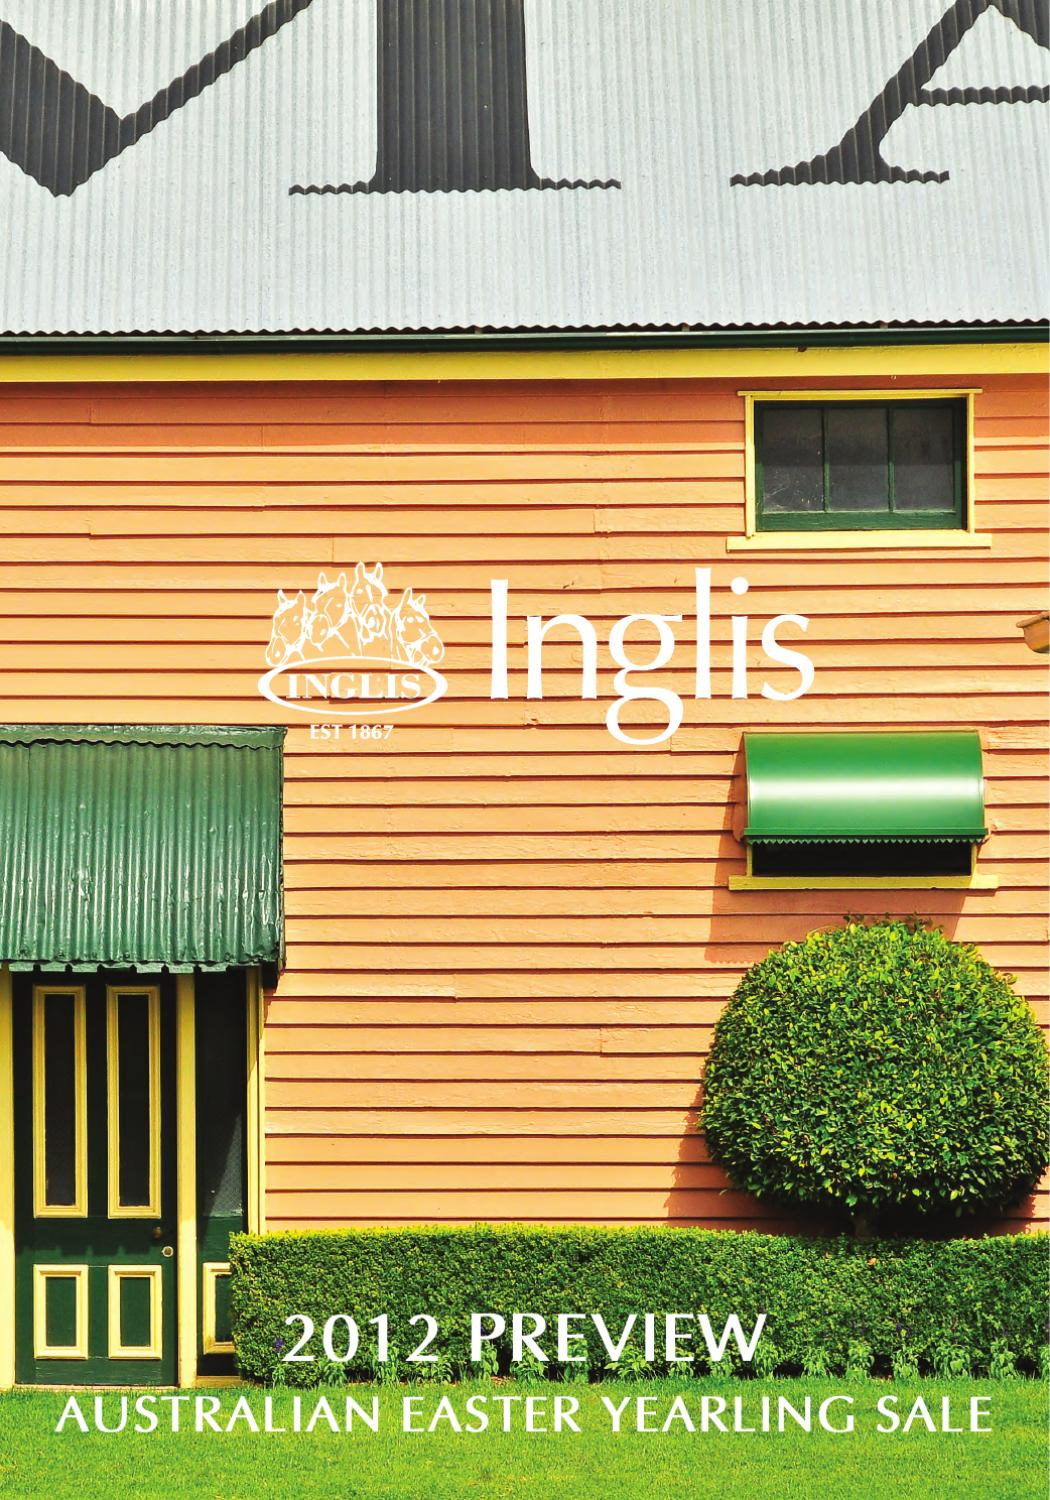 4ac1b03f9 2012 Preview Australian Easter Yearling Sale by Inglis - issuu